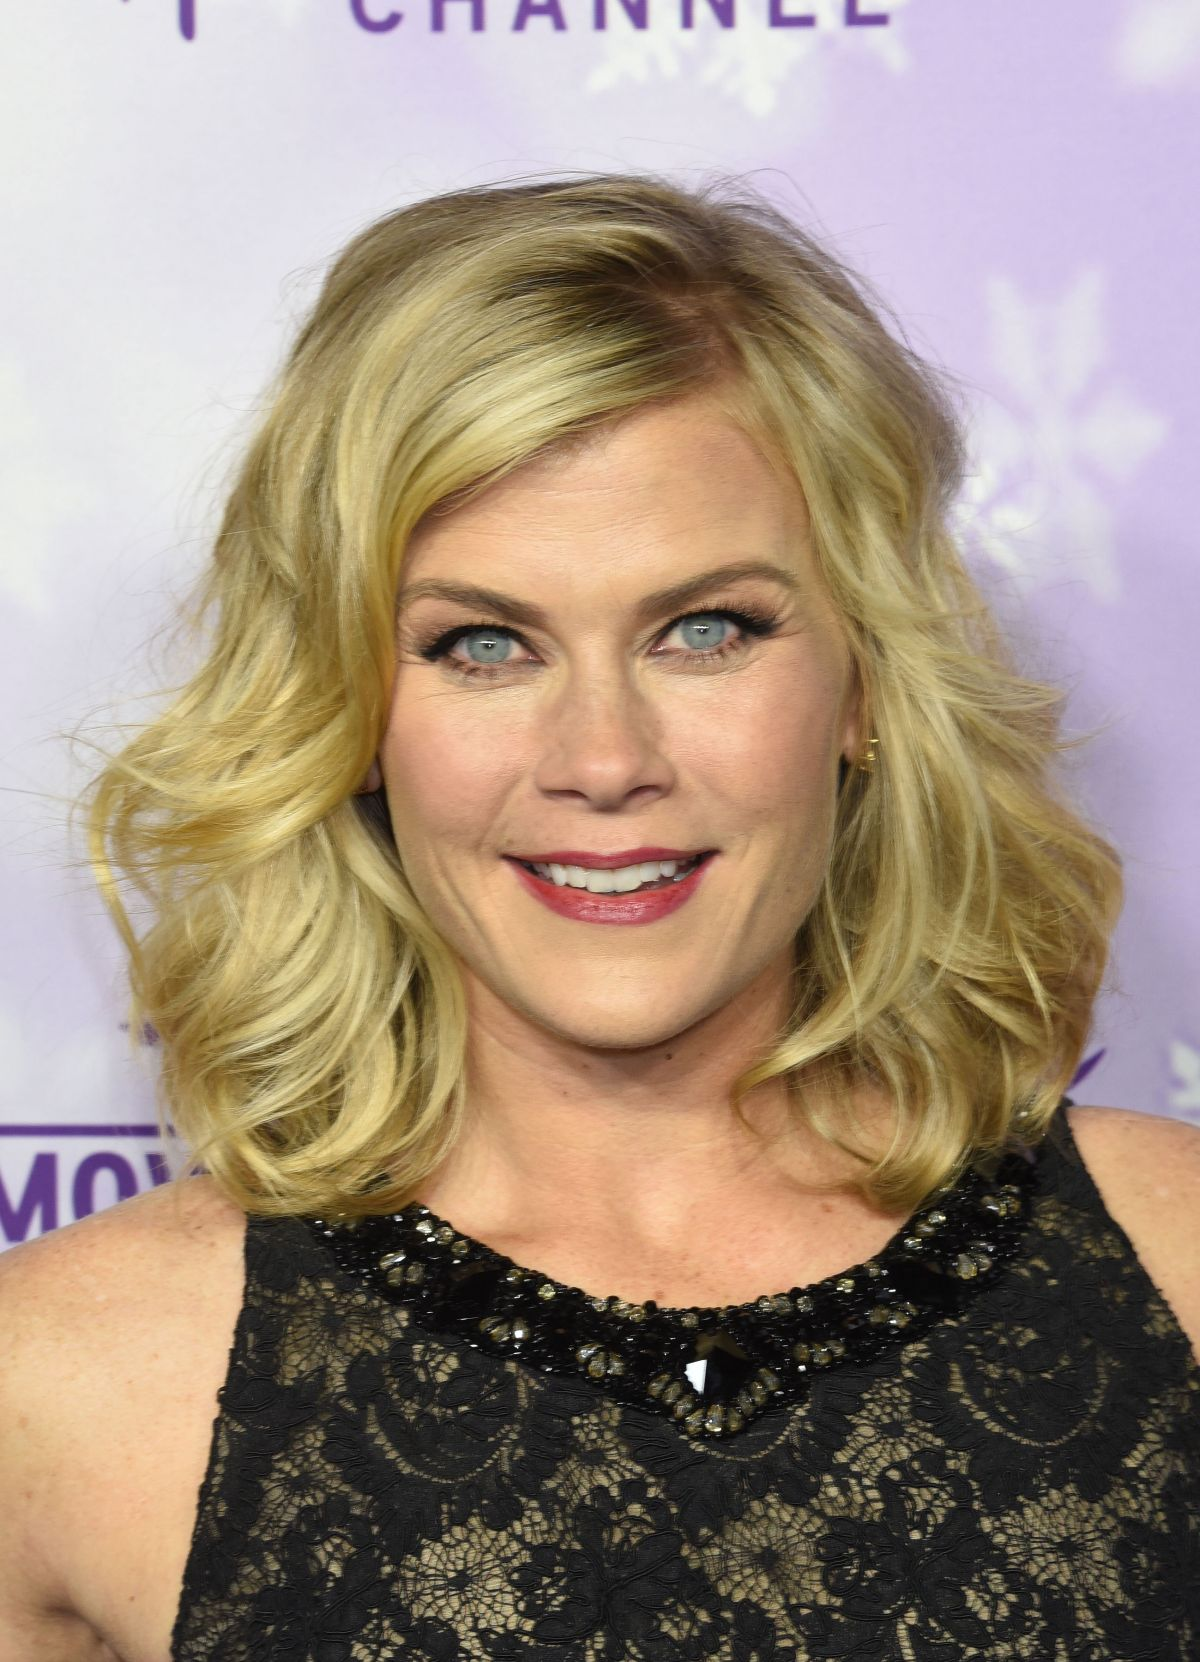 alison sweeney movies and tv shows